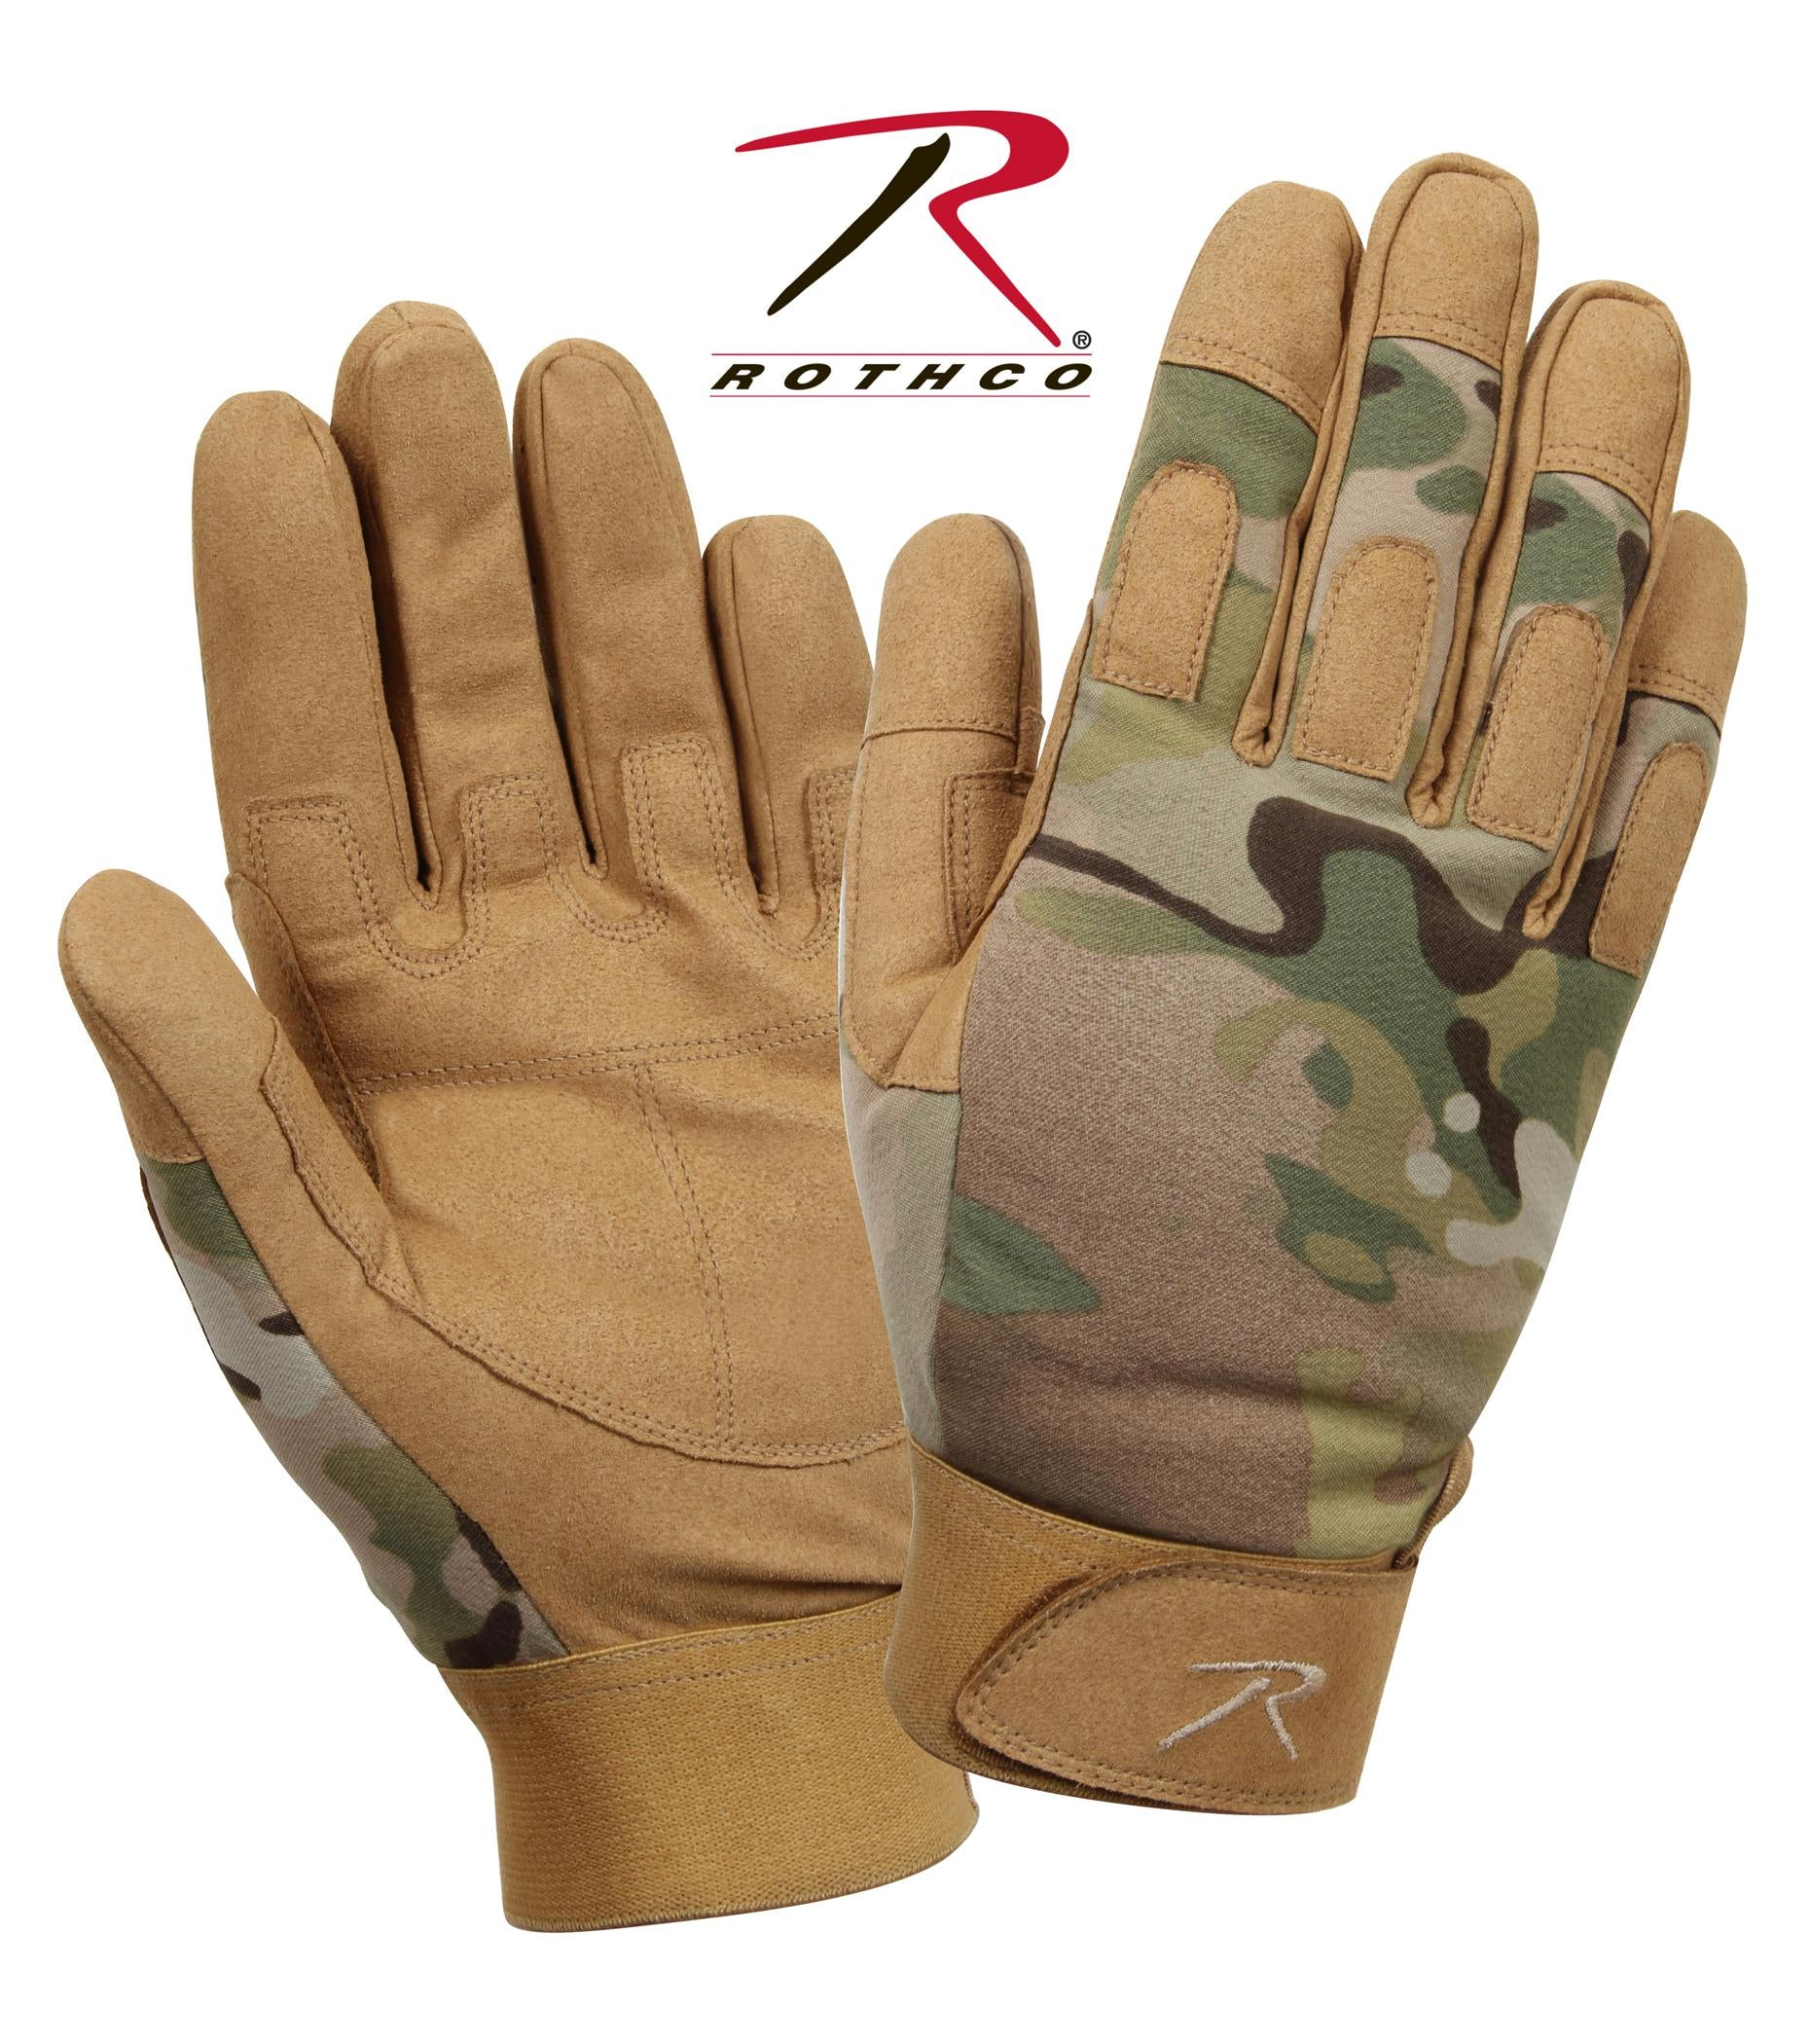 Rothco Lightweight All Purpose Duty Gloves - MultiCam / L